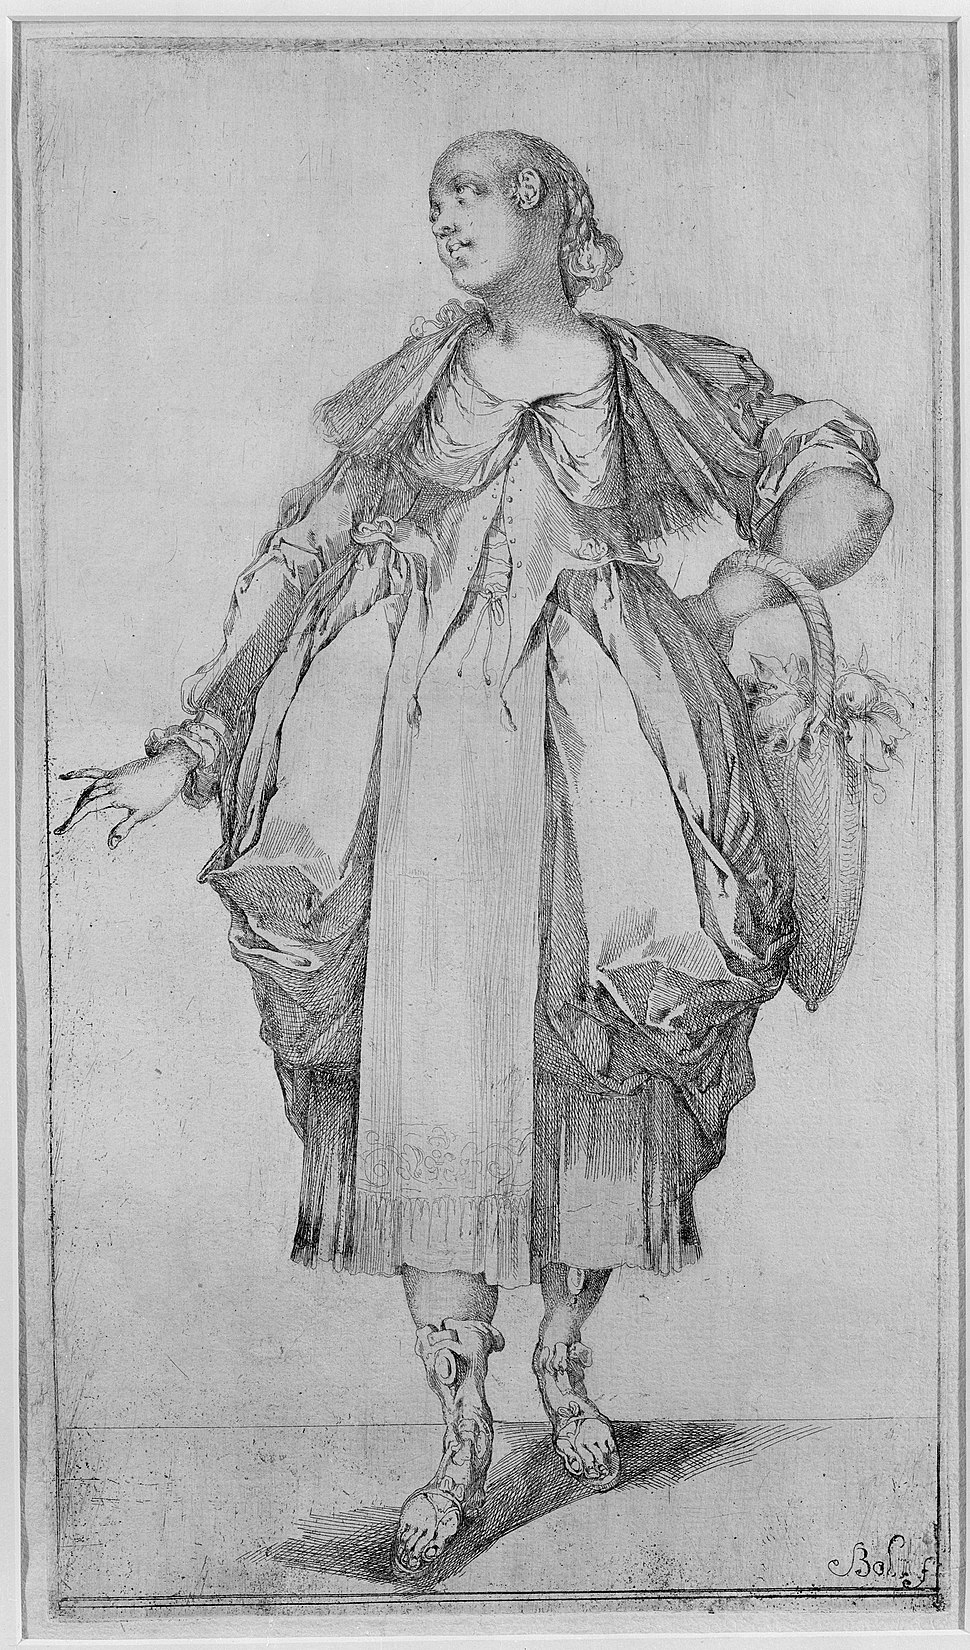 Gardener with a Basket on her Arm, from Hortulanae series MET MM10514